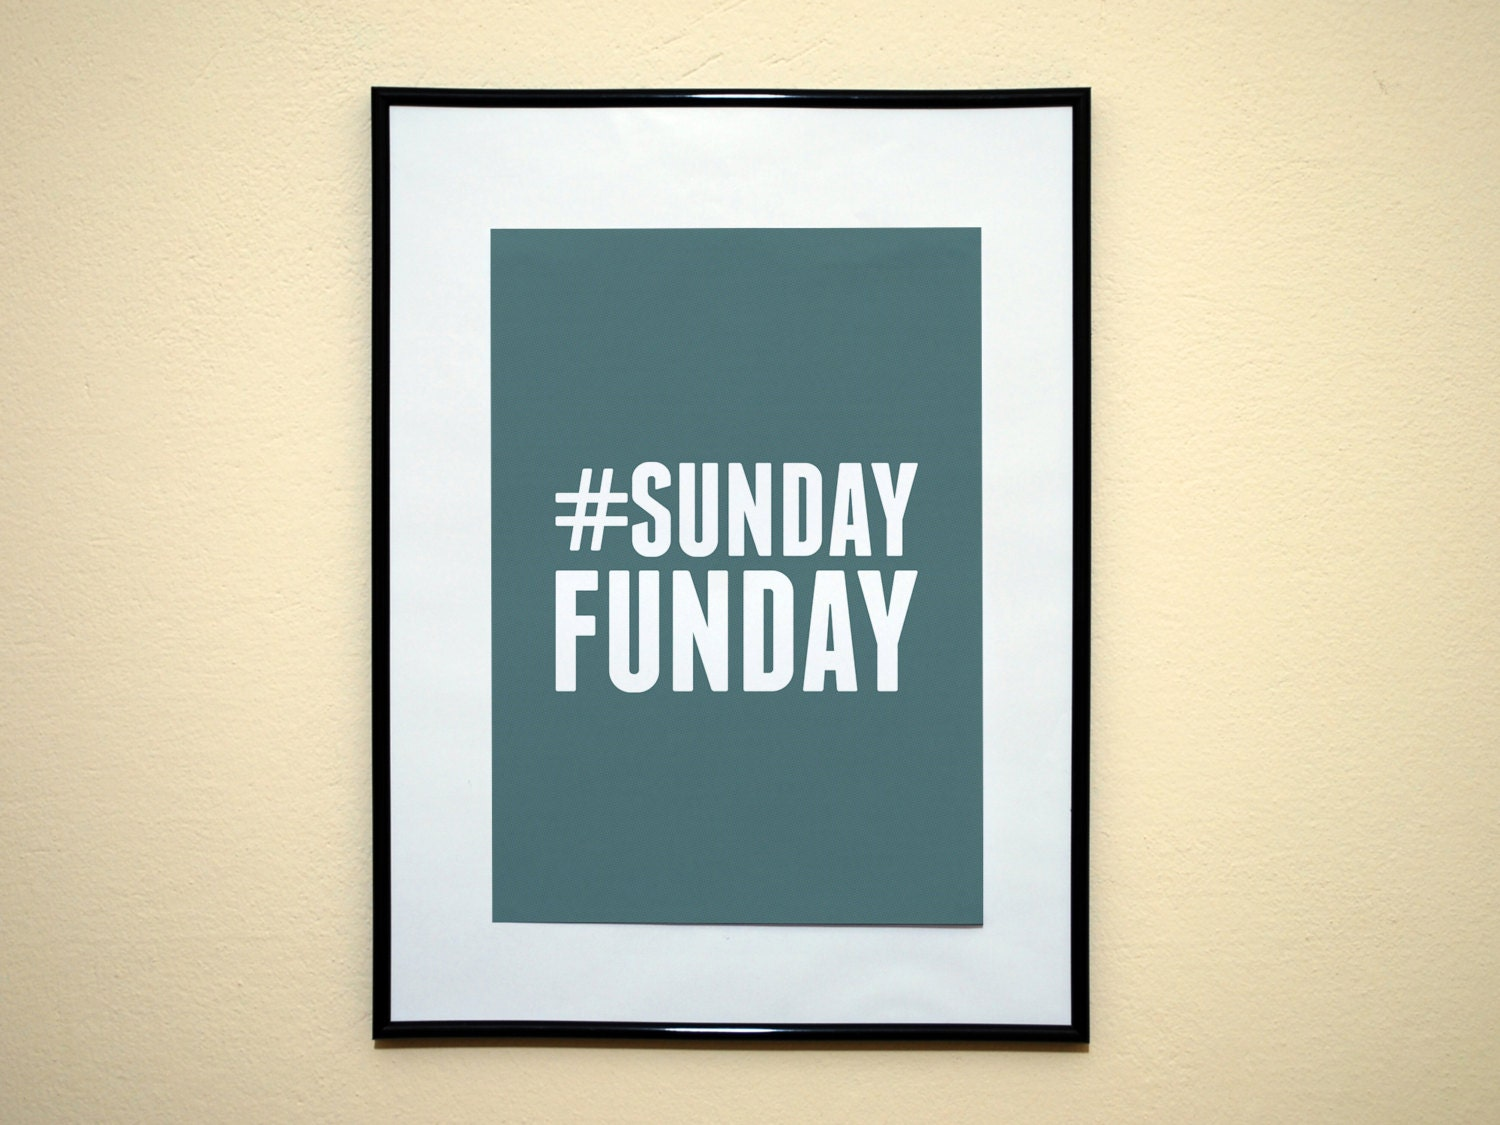 Hashtag Sunday Funday Instagram Social Media By